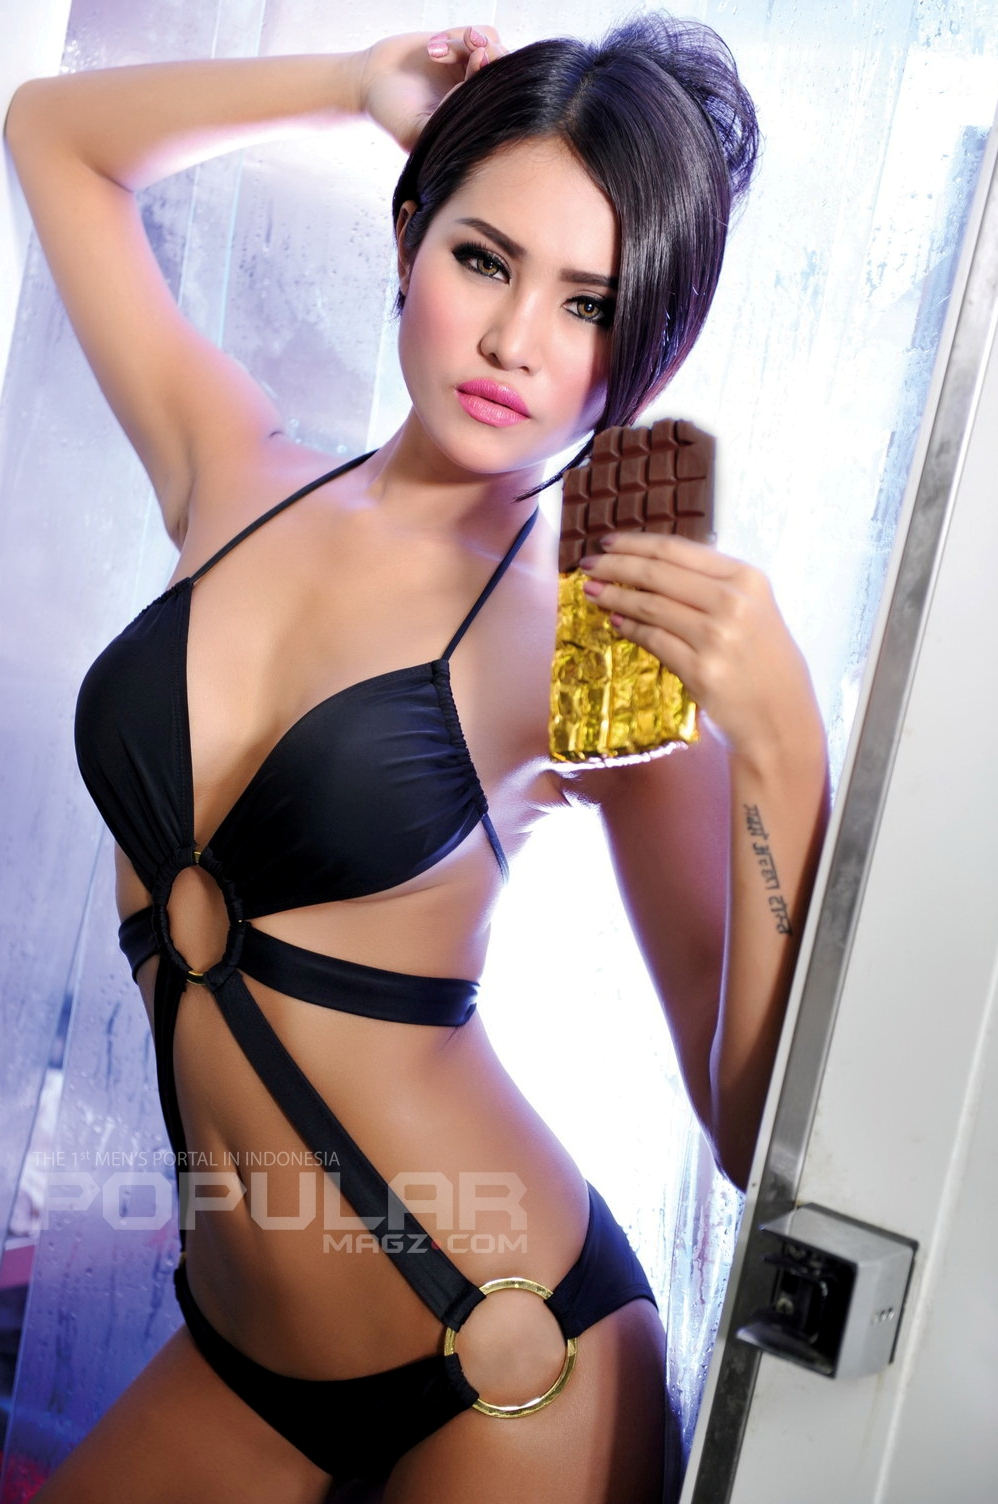 Foto Artis dan Model Majalah Popular . model seksi Laras Monca ...